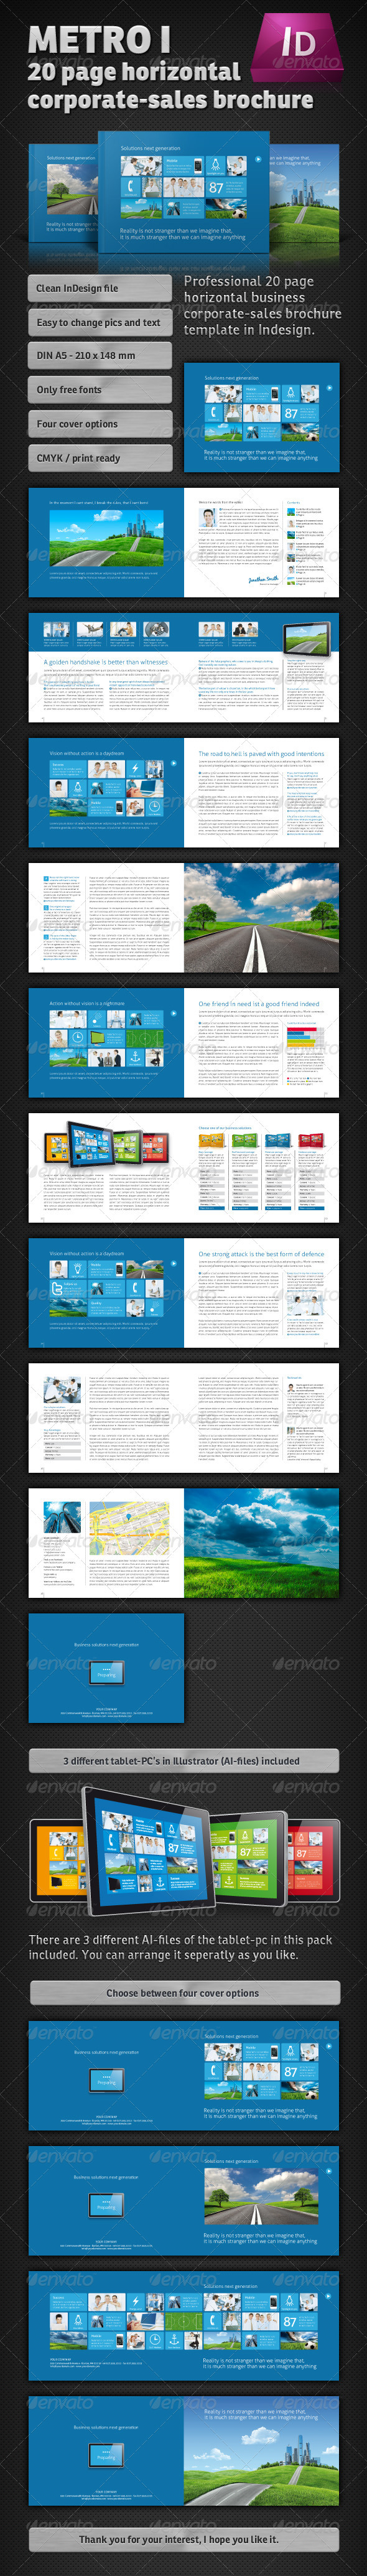 GraphicRiver Metro I 20 Page horizontal Sales Brochure 1053042